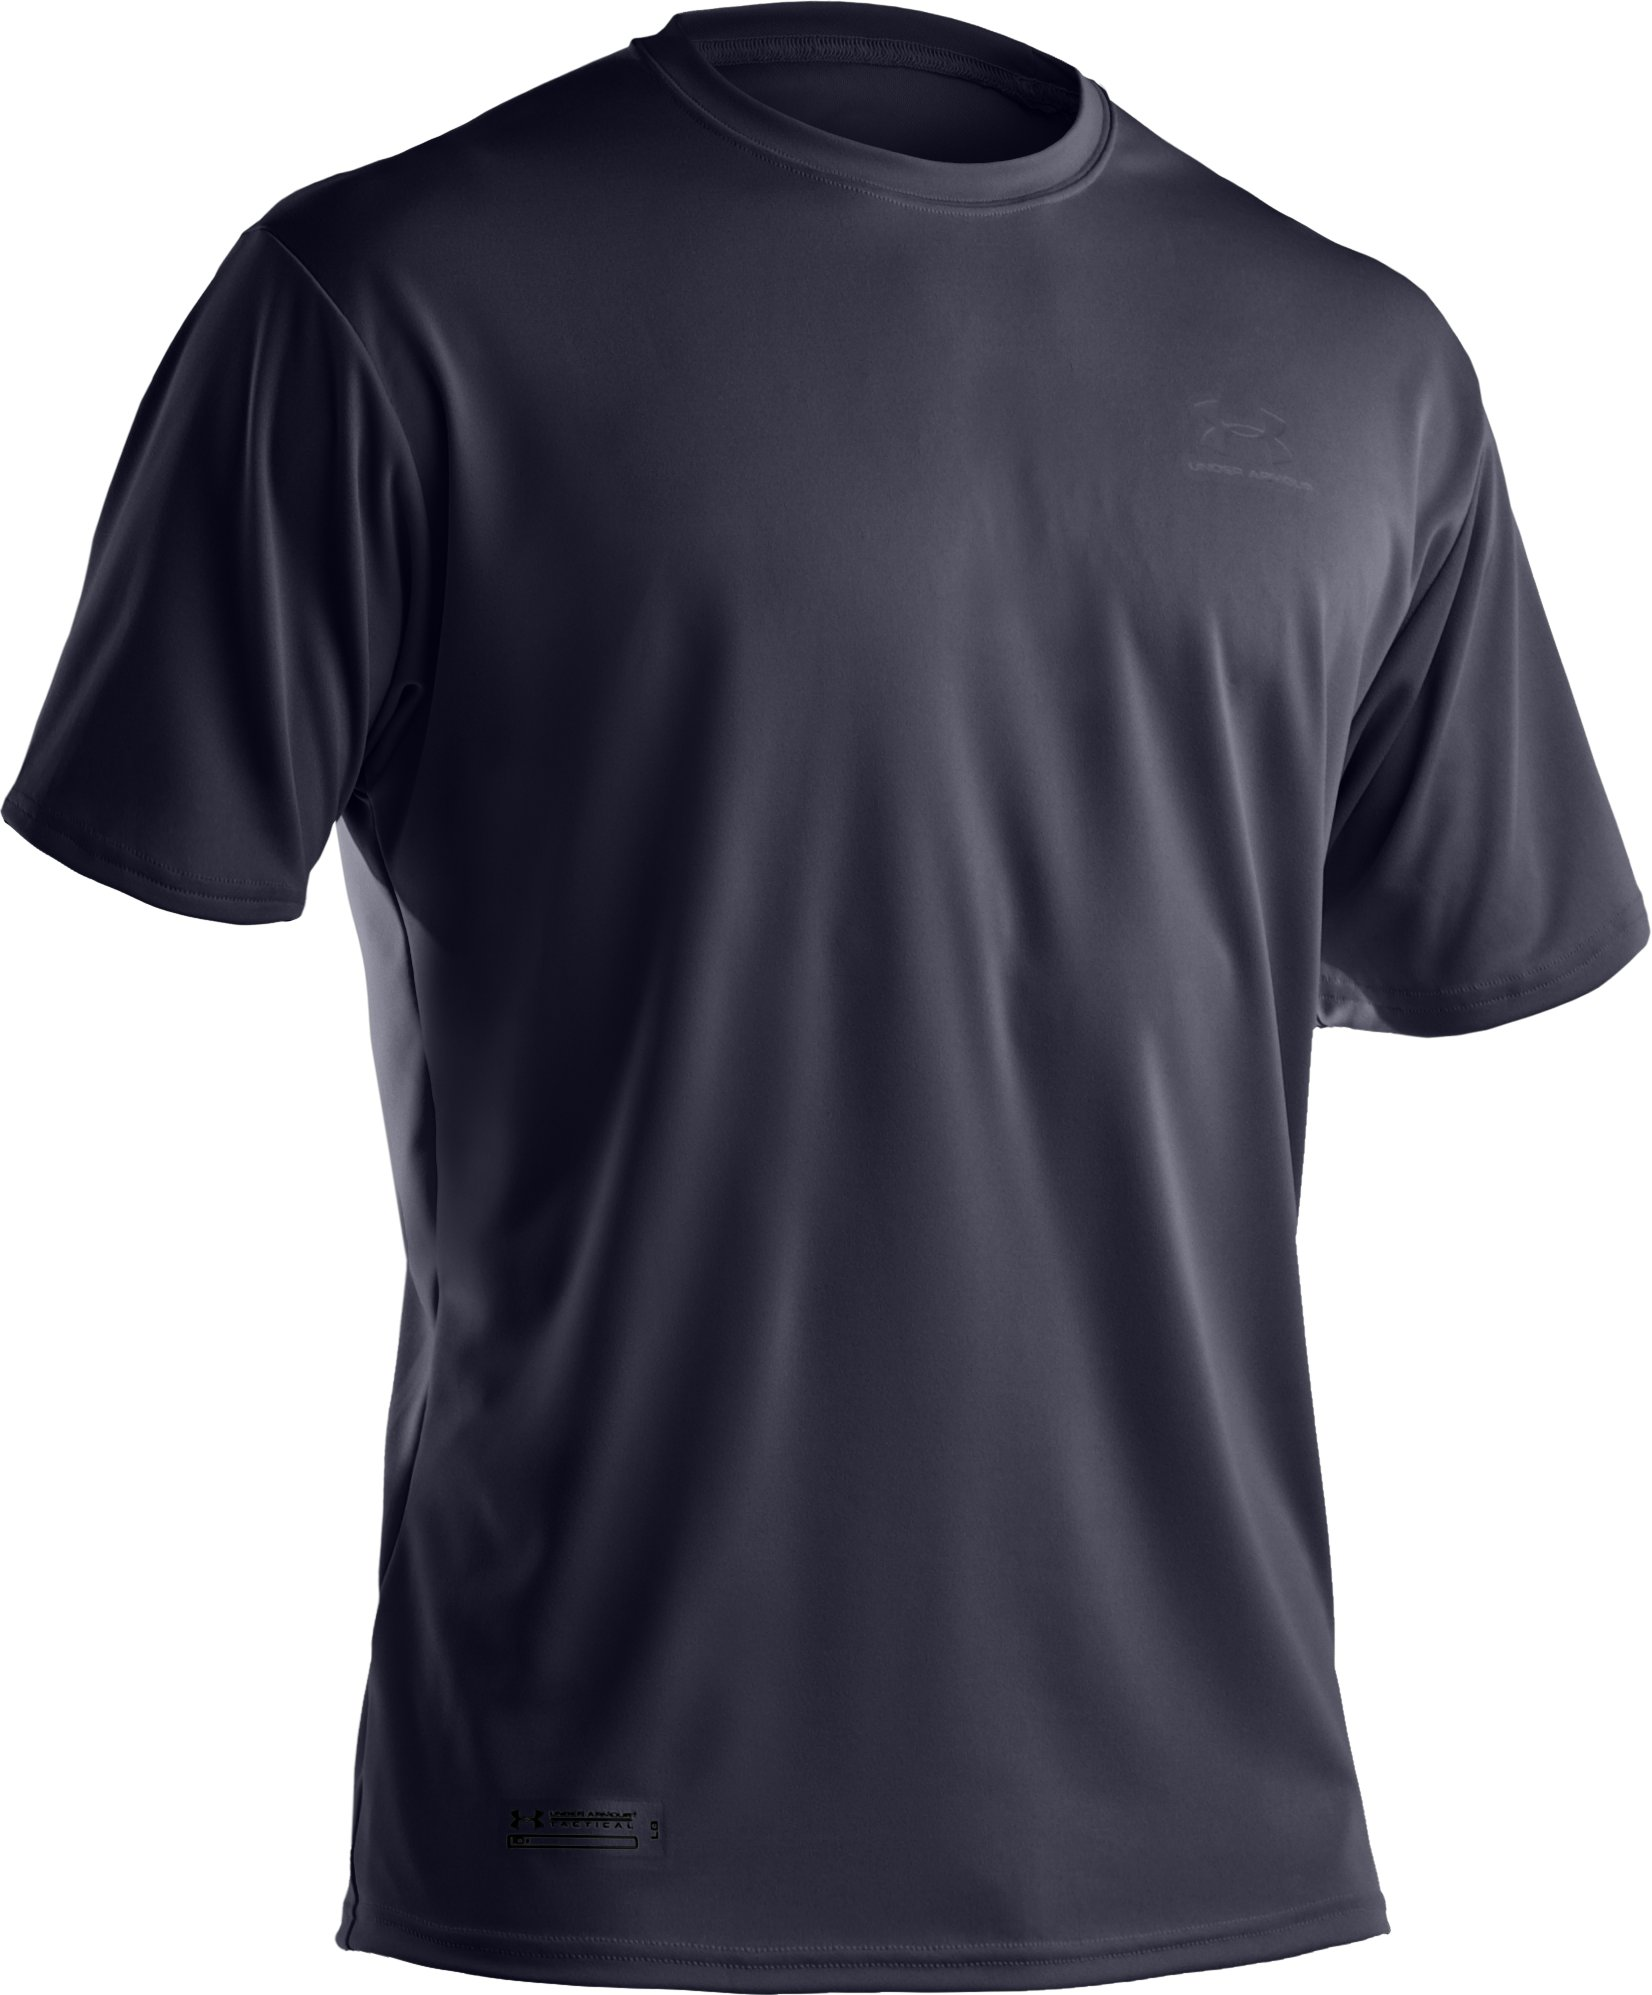 Men's UA HeatGear® Tactical Short Sleeve T-Shirt, Dark Navy Blue , undefined